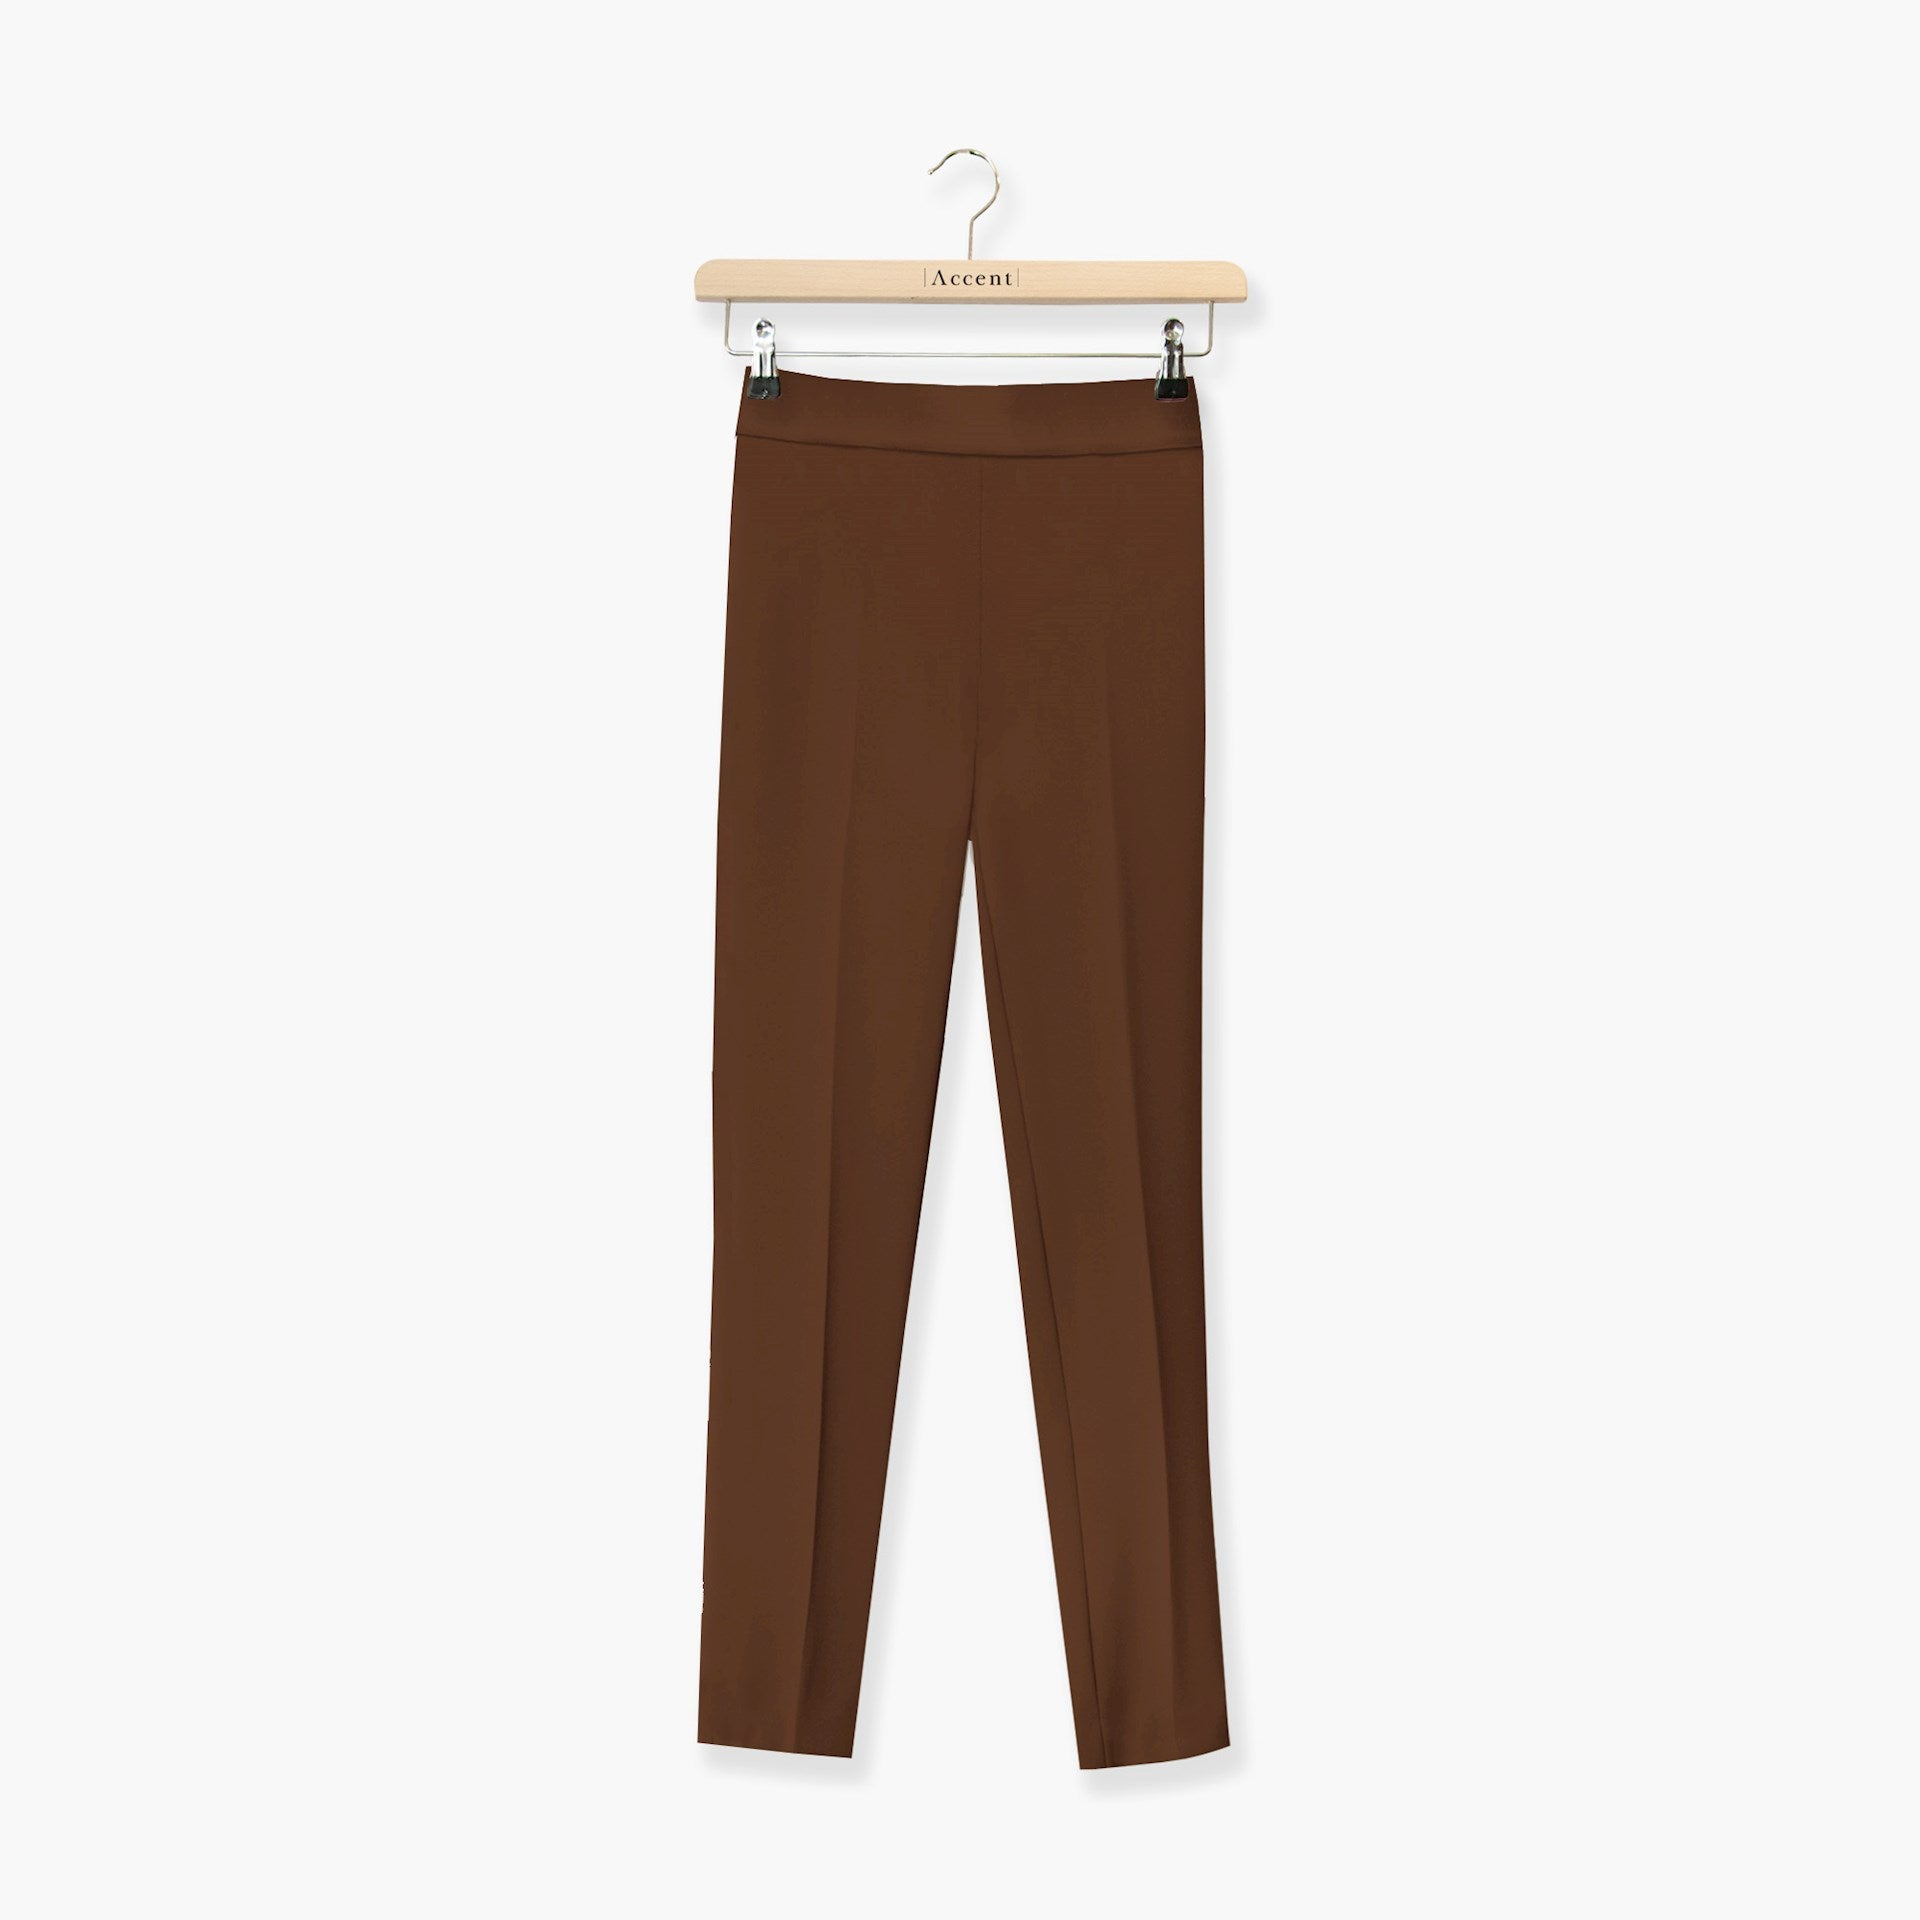 variant_9011/brown